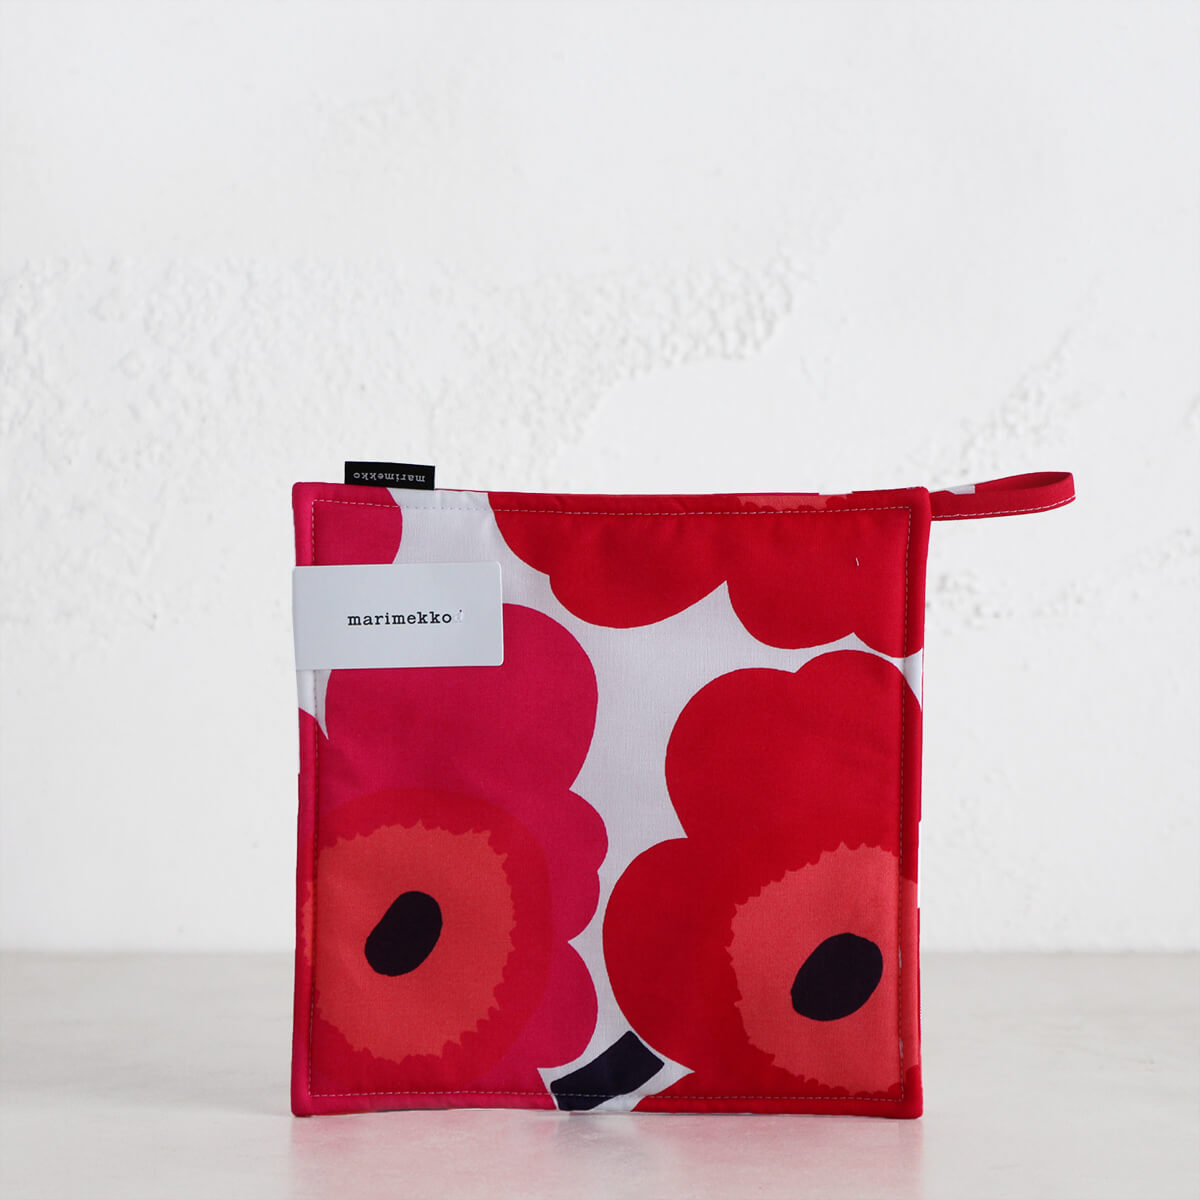 MARIMEKKO  |  PIENI UNIKKO POT HOLDER  |  RED + ORANGE + PINK  |  OVEN MITT